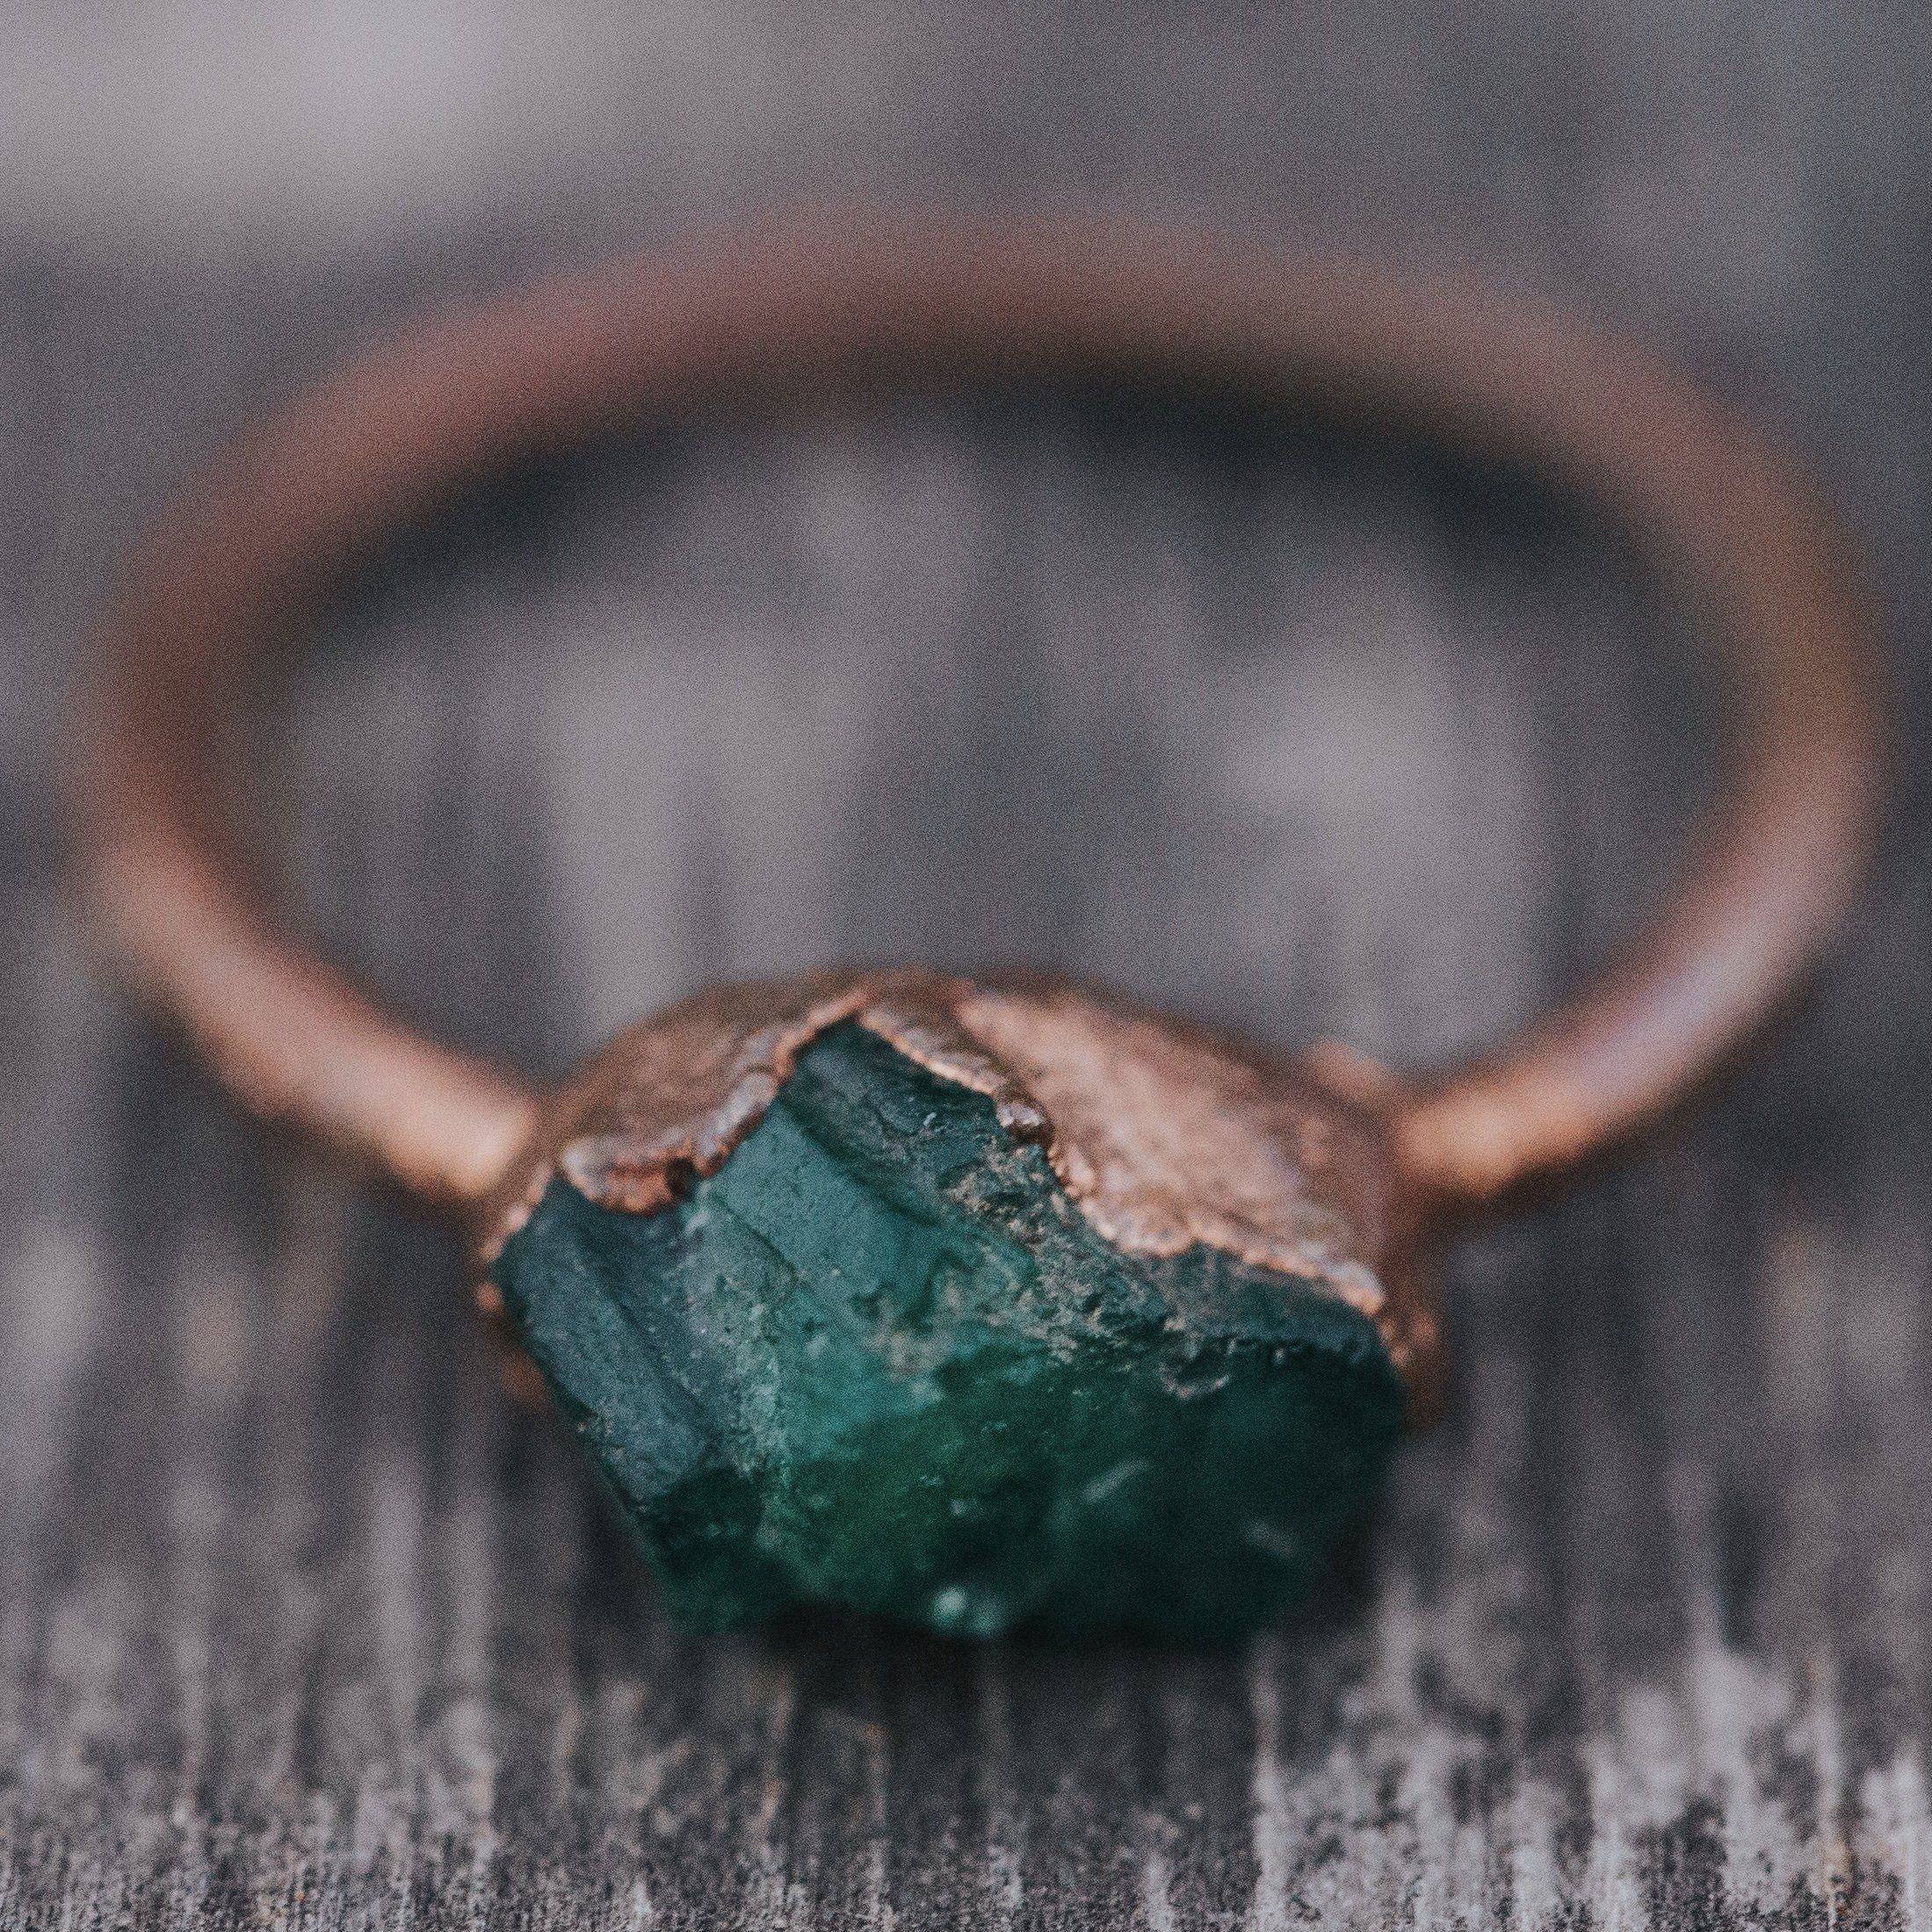 Formed with the most captivating shades of green, emeralds are known as the gem of unconditional love.